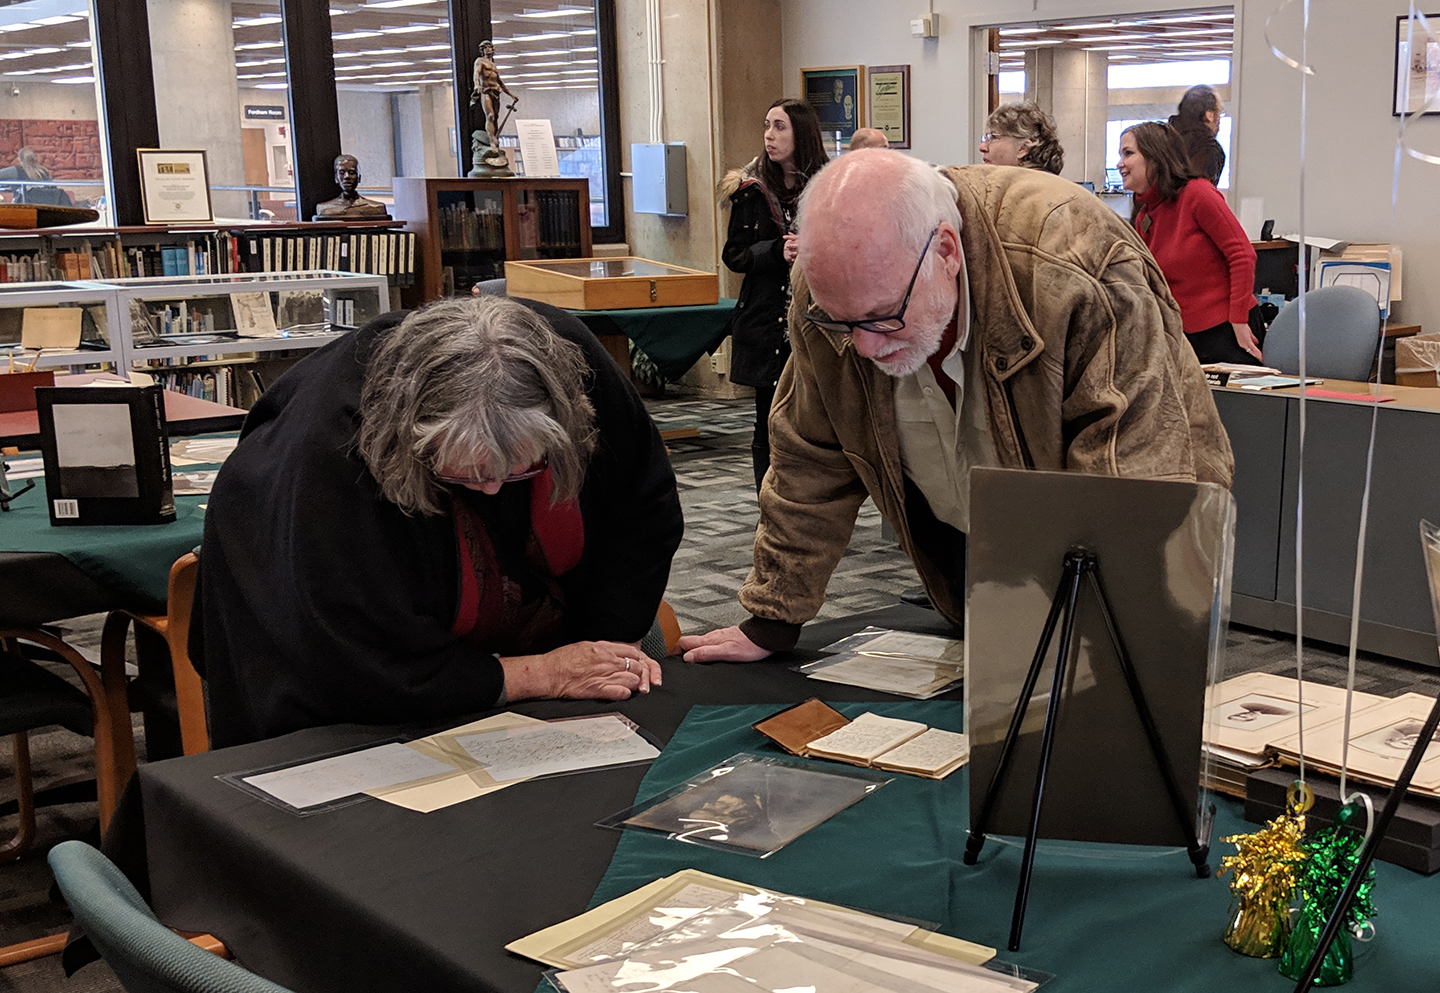 Visitors reading the Bishop's diaries and letters